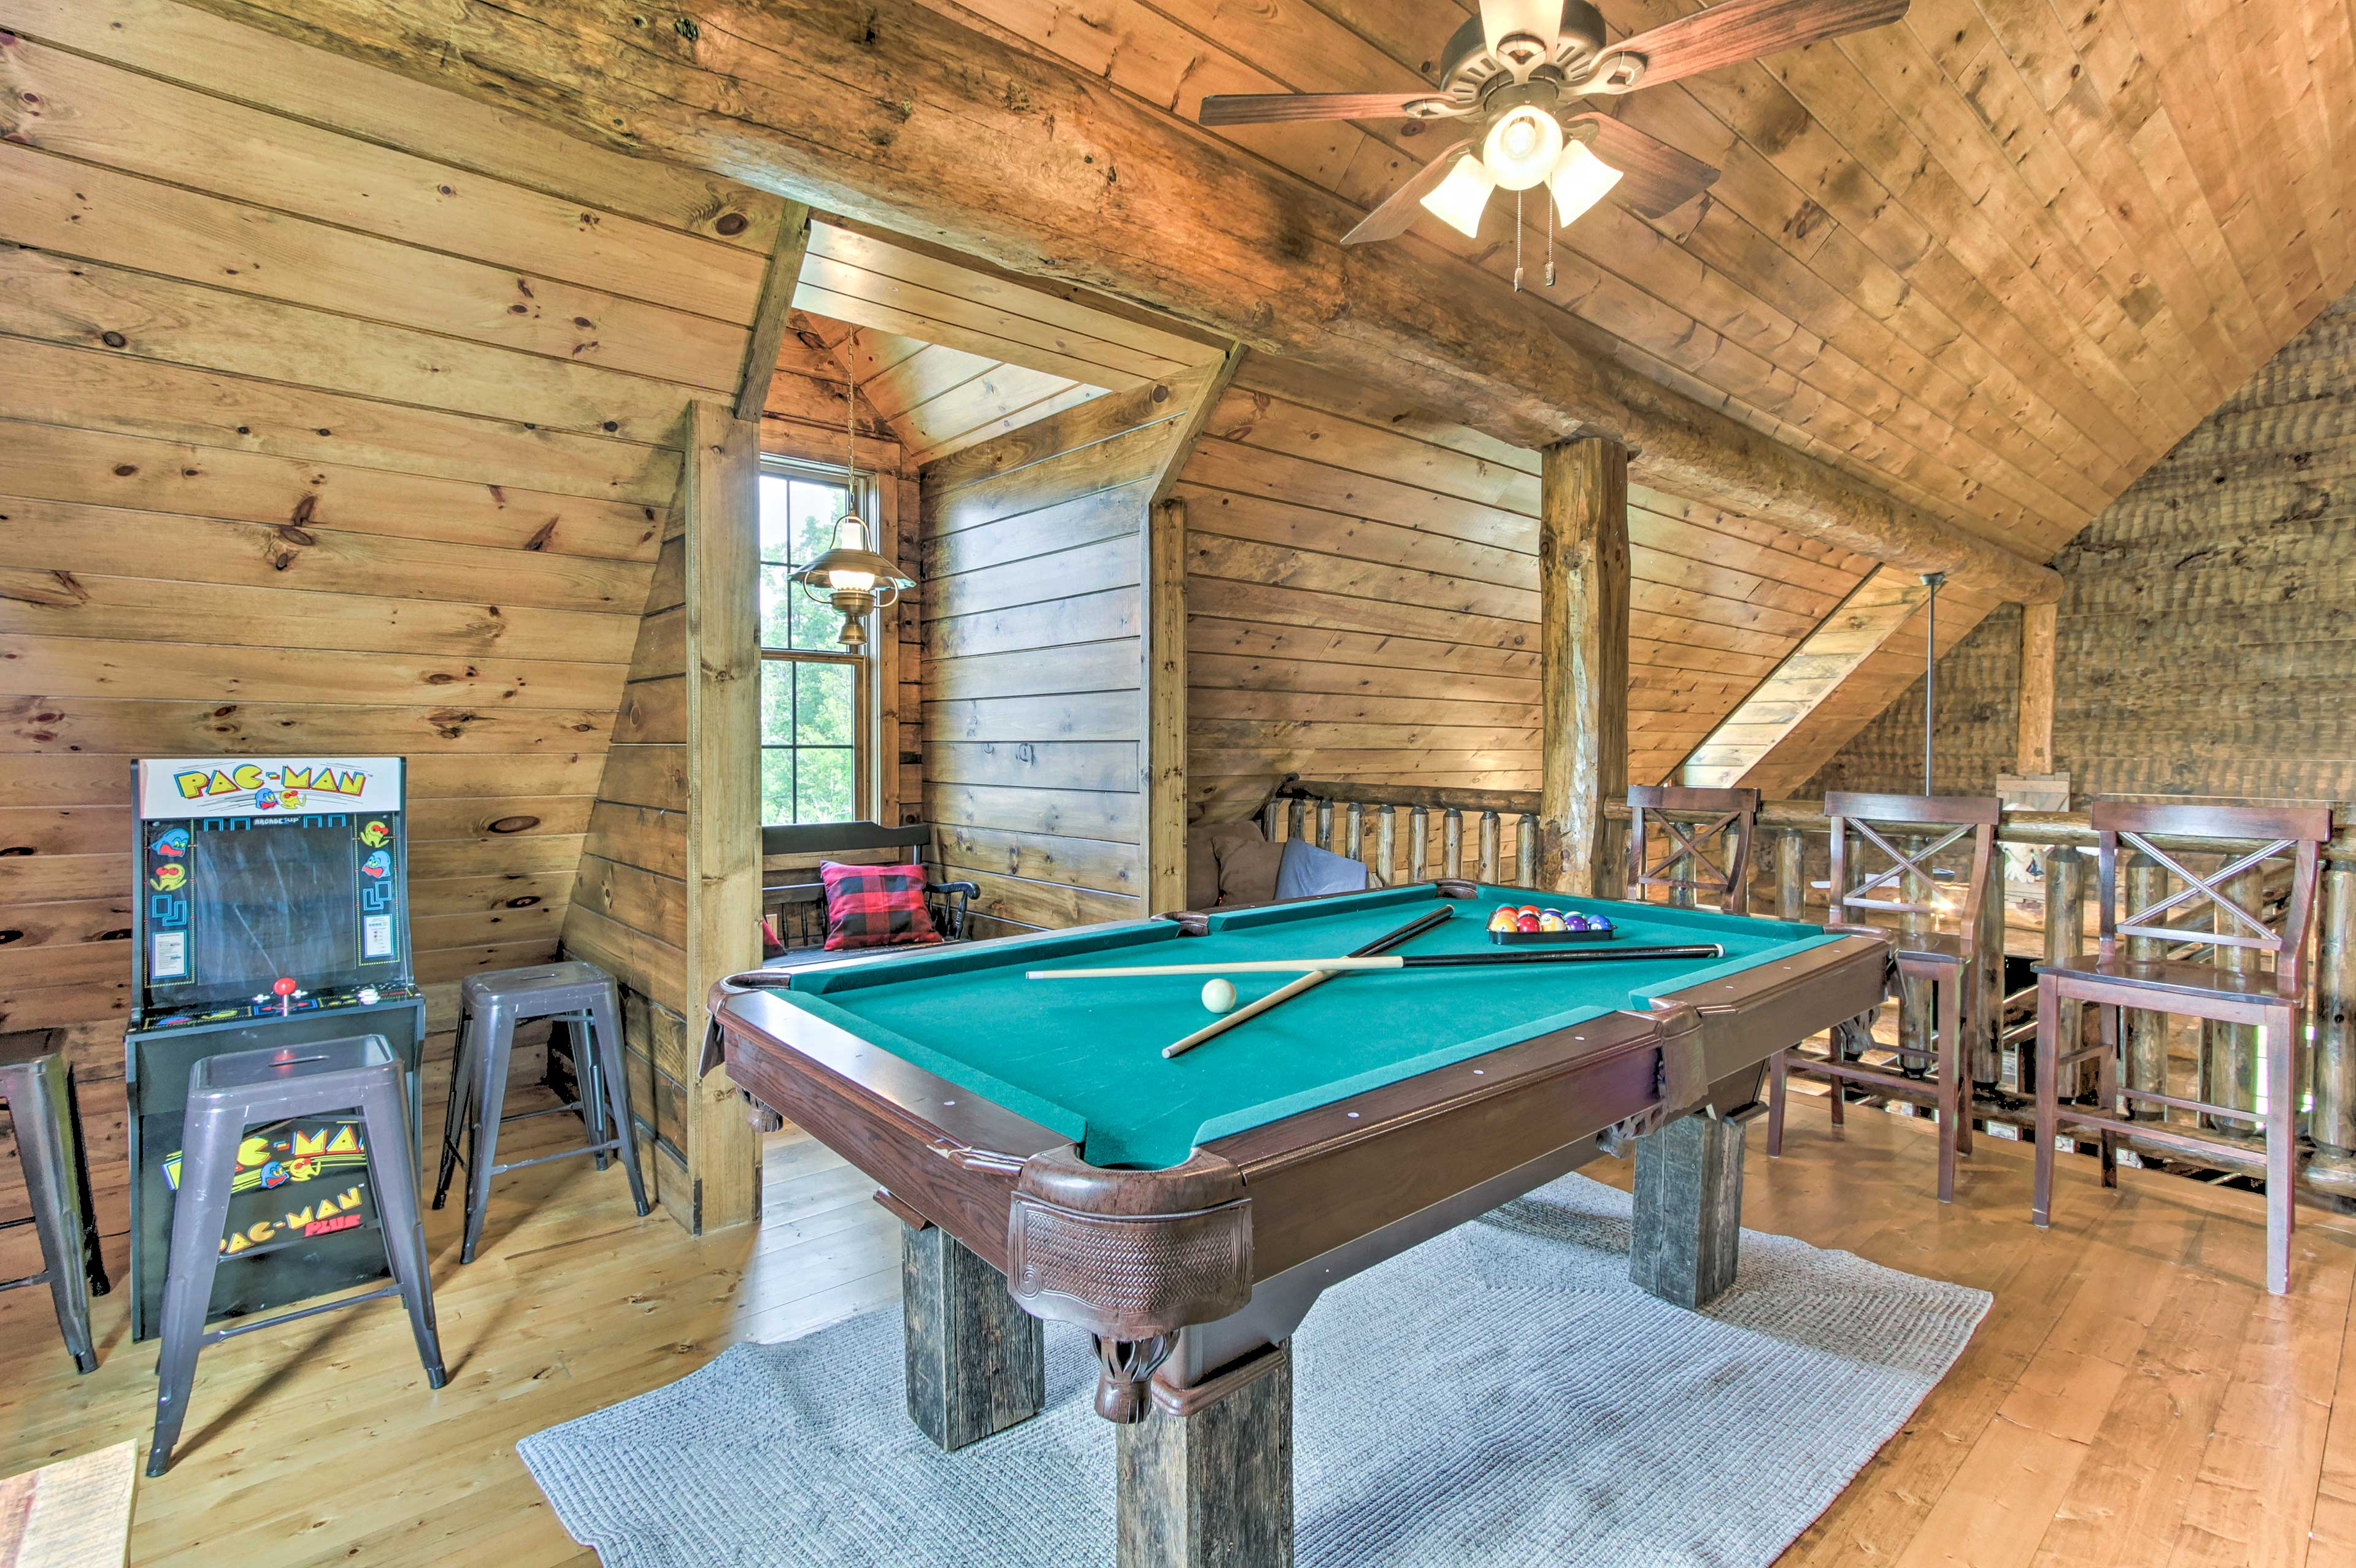 Who's up for a game of pool.